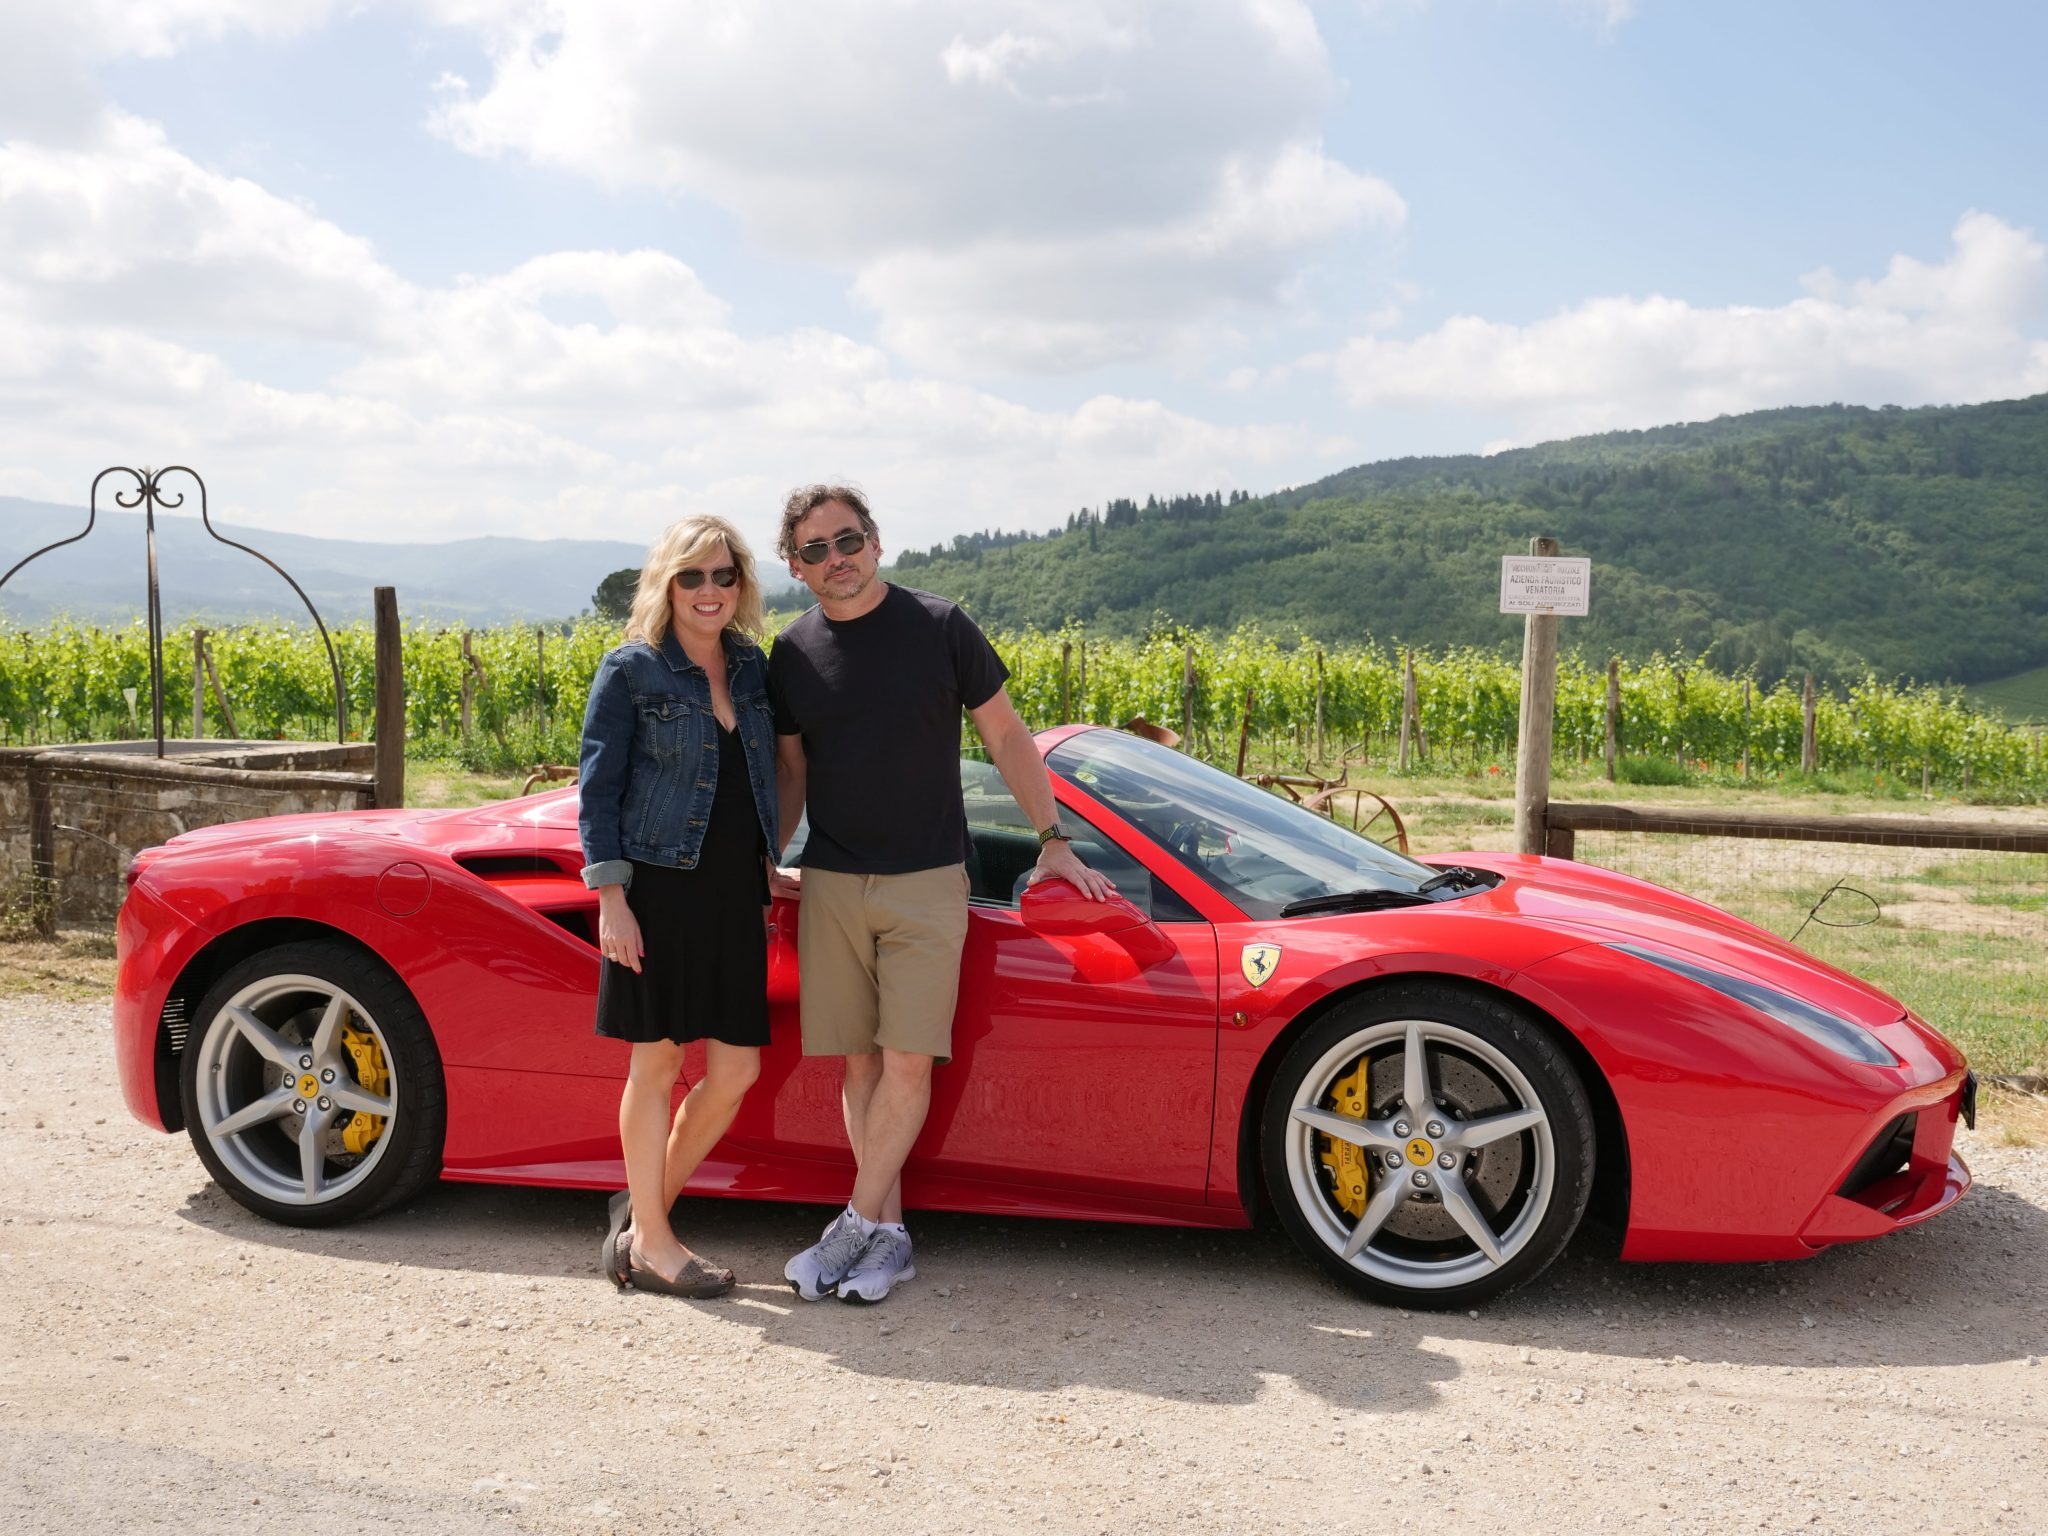 Ferrari tours in Tuscany: a customer feedback - Ferrari 488 Spider